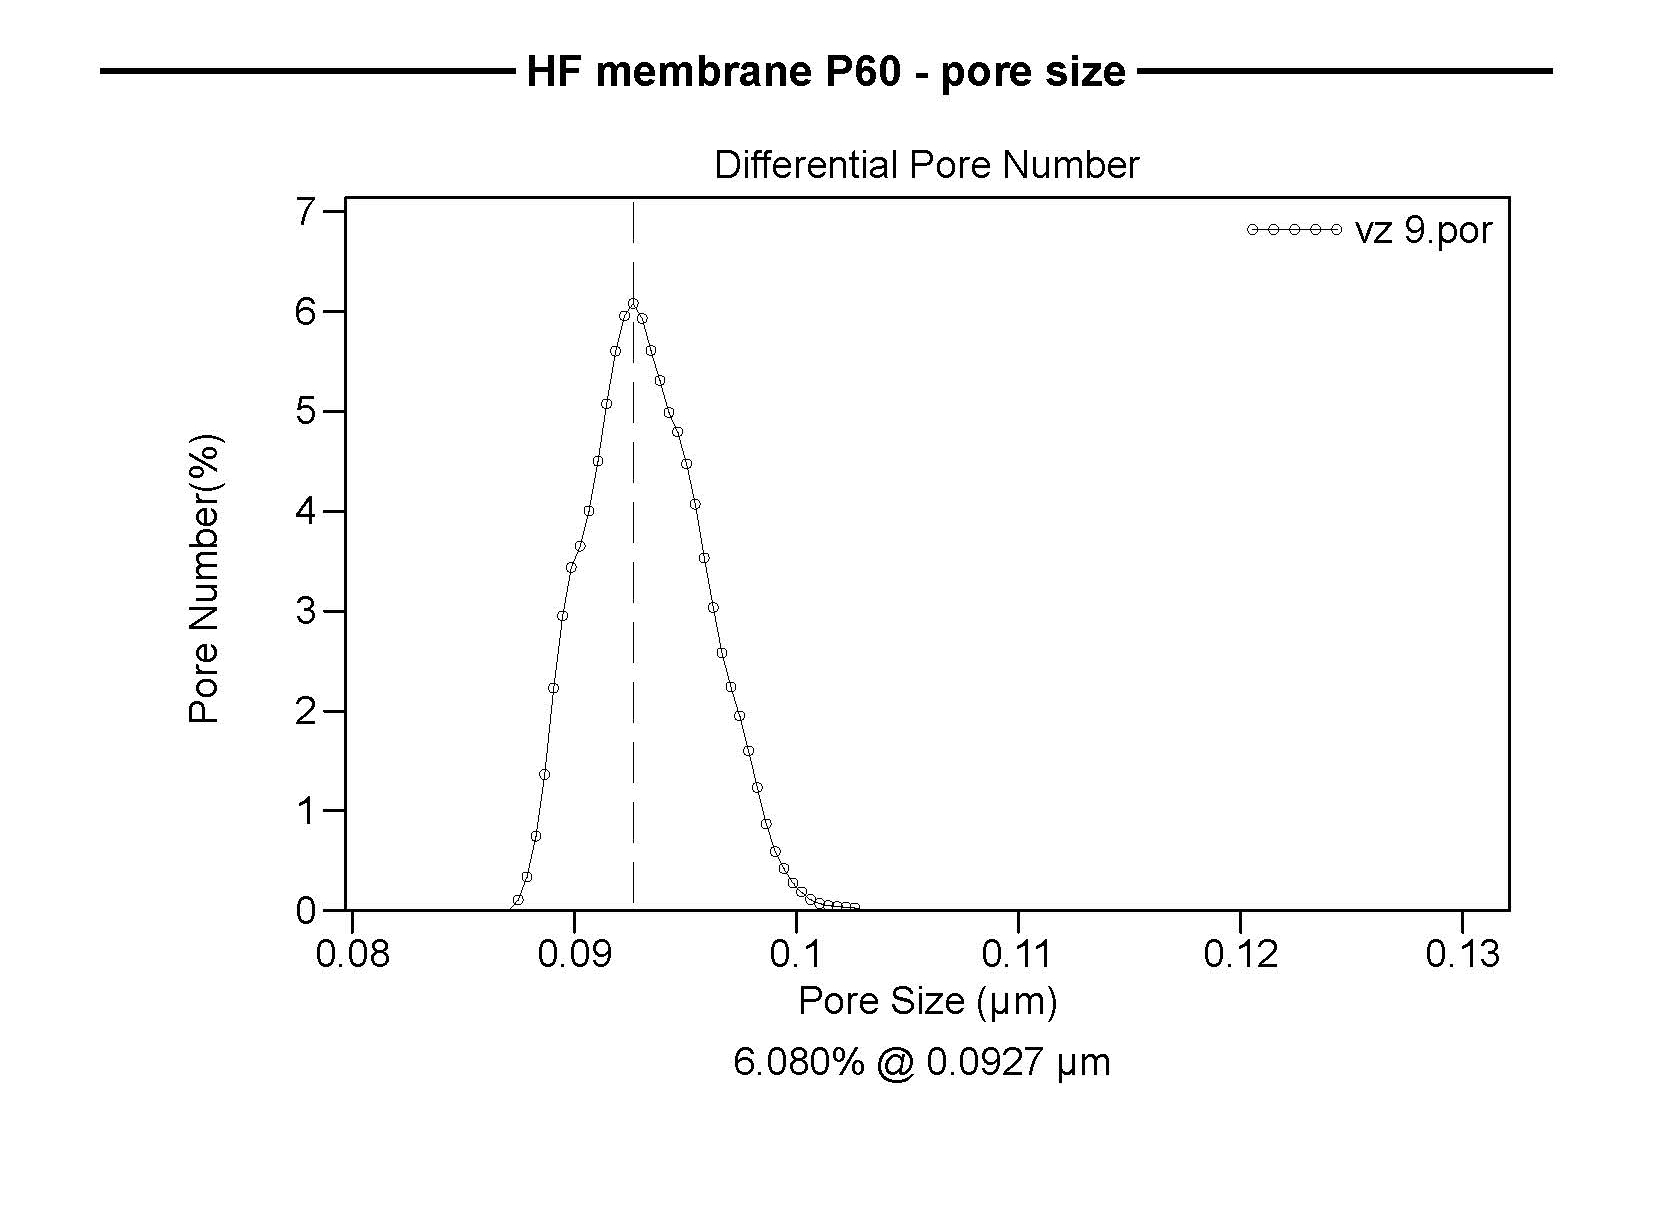 PP membrane pore size distribution